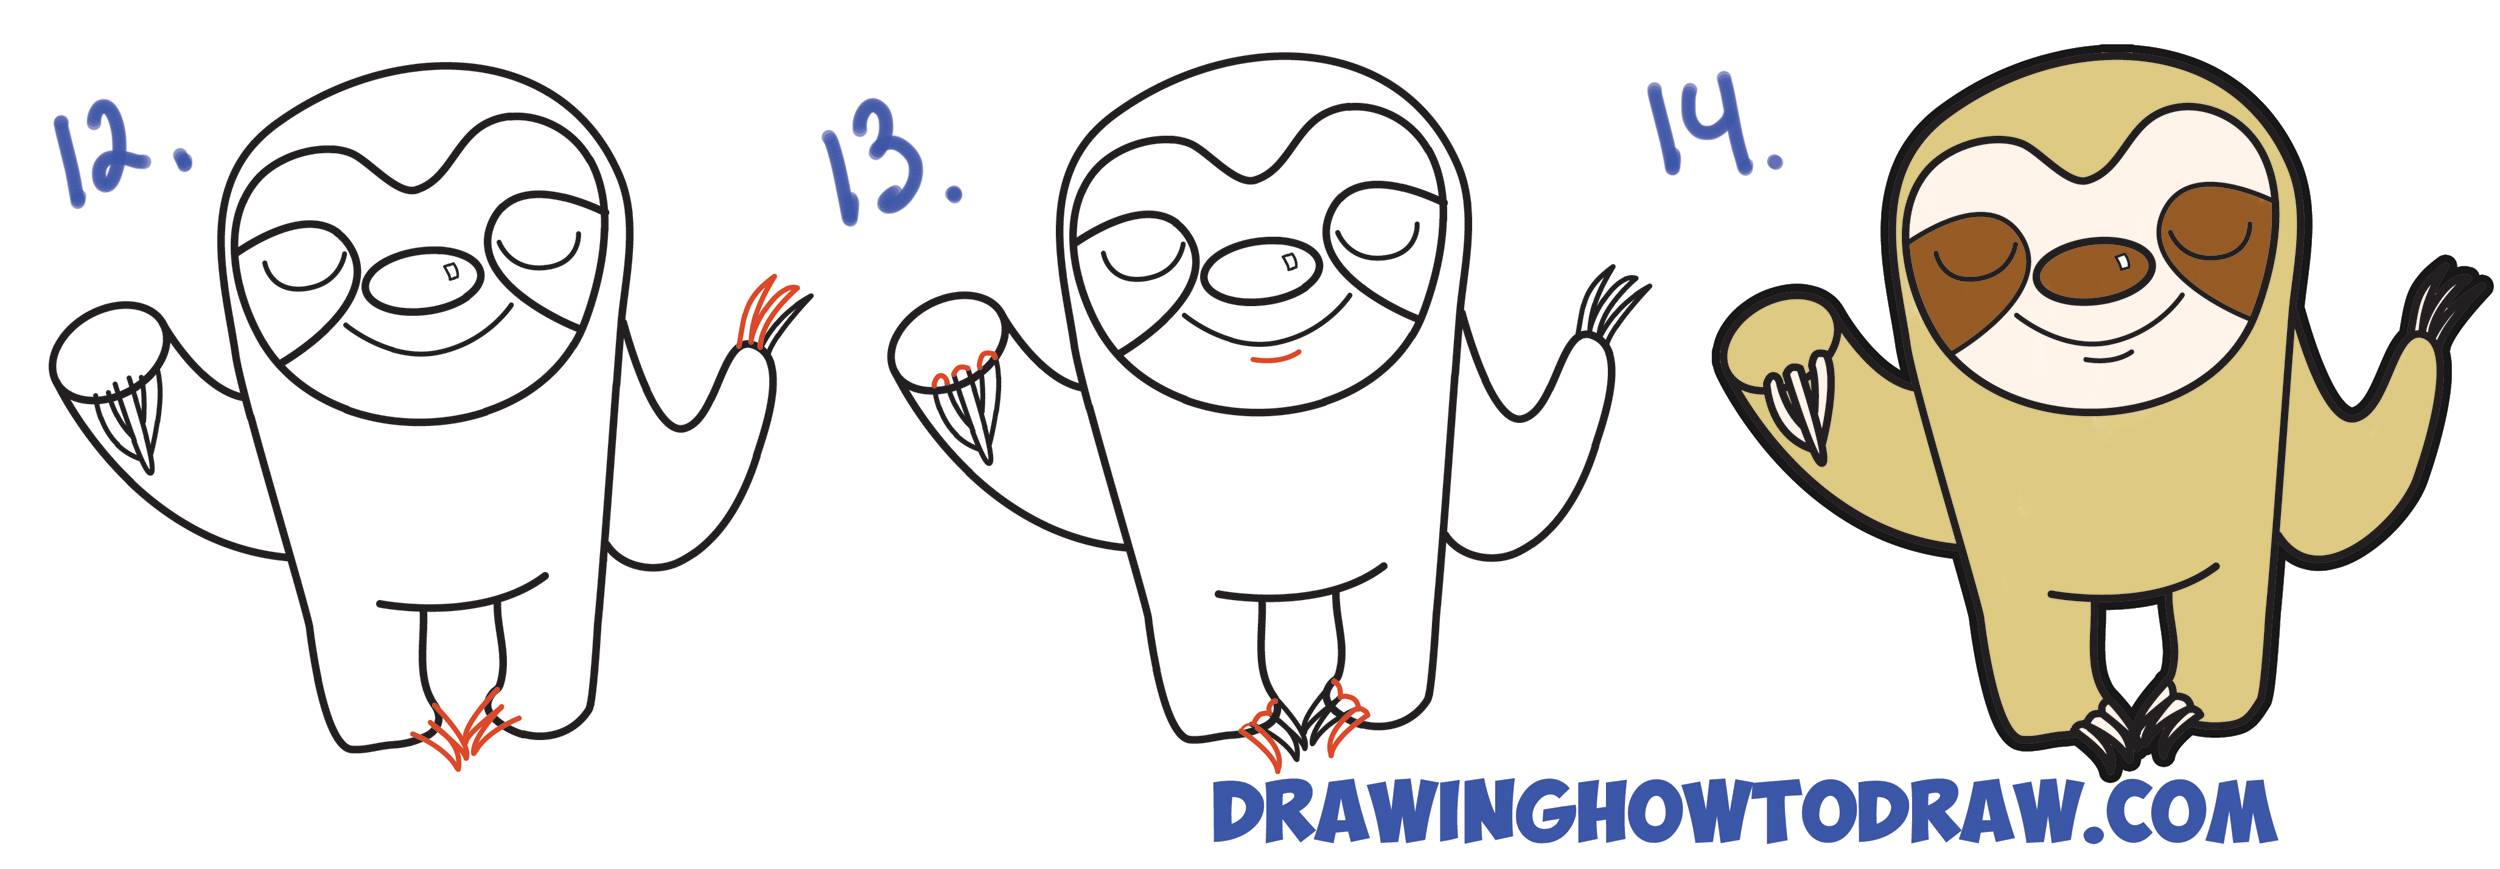 Learn How to Draw Cute Cartoon Sloth with Simple Steps Drawing Lesson for Children and Beginners